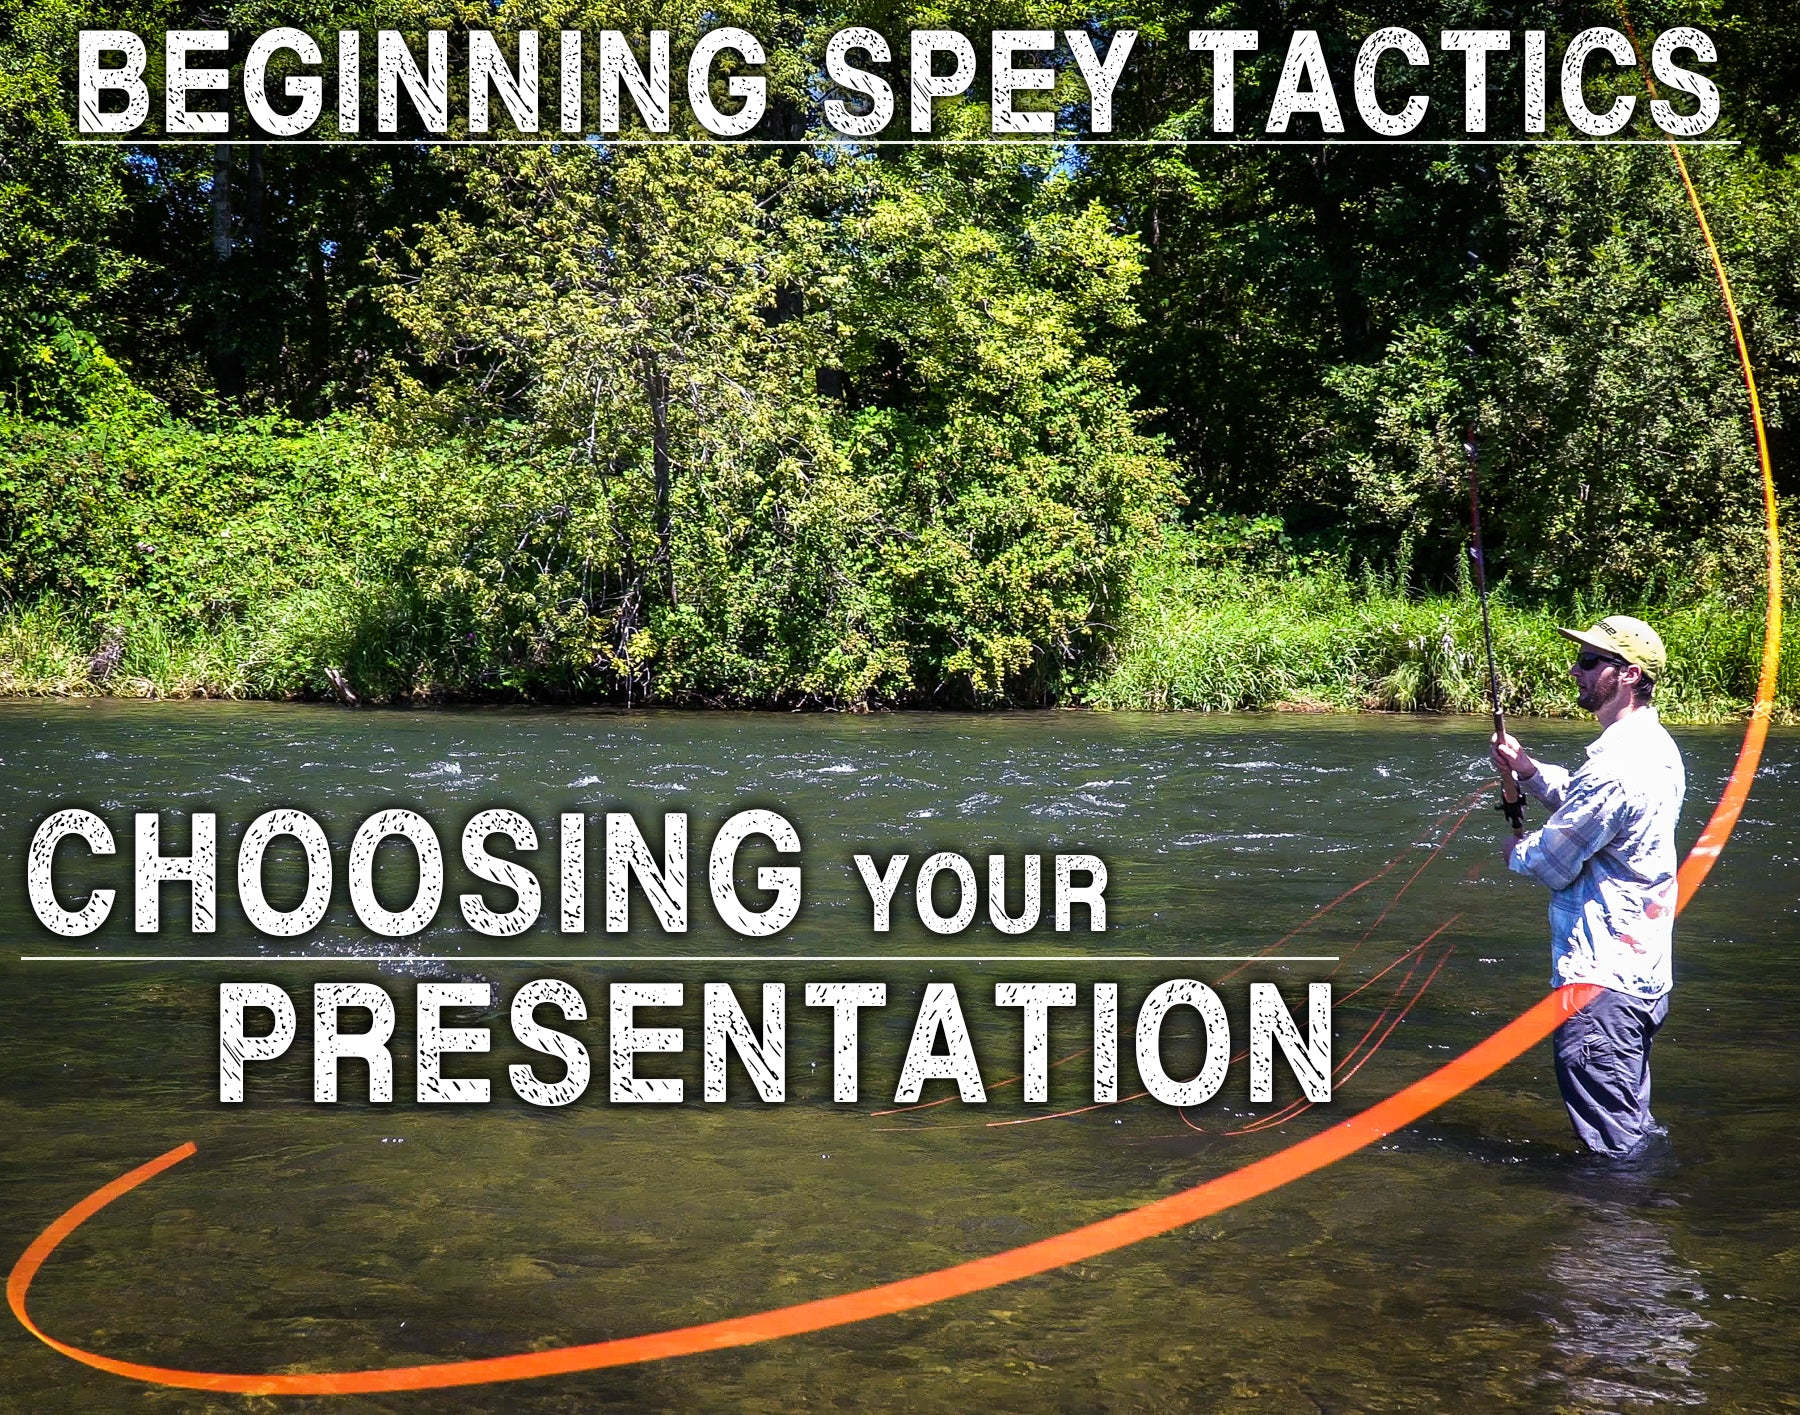 Choosing Your Presentation | Beginning Spey Tactics